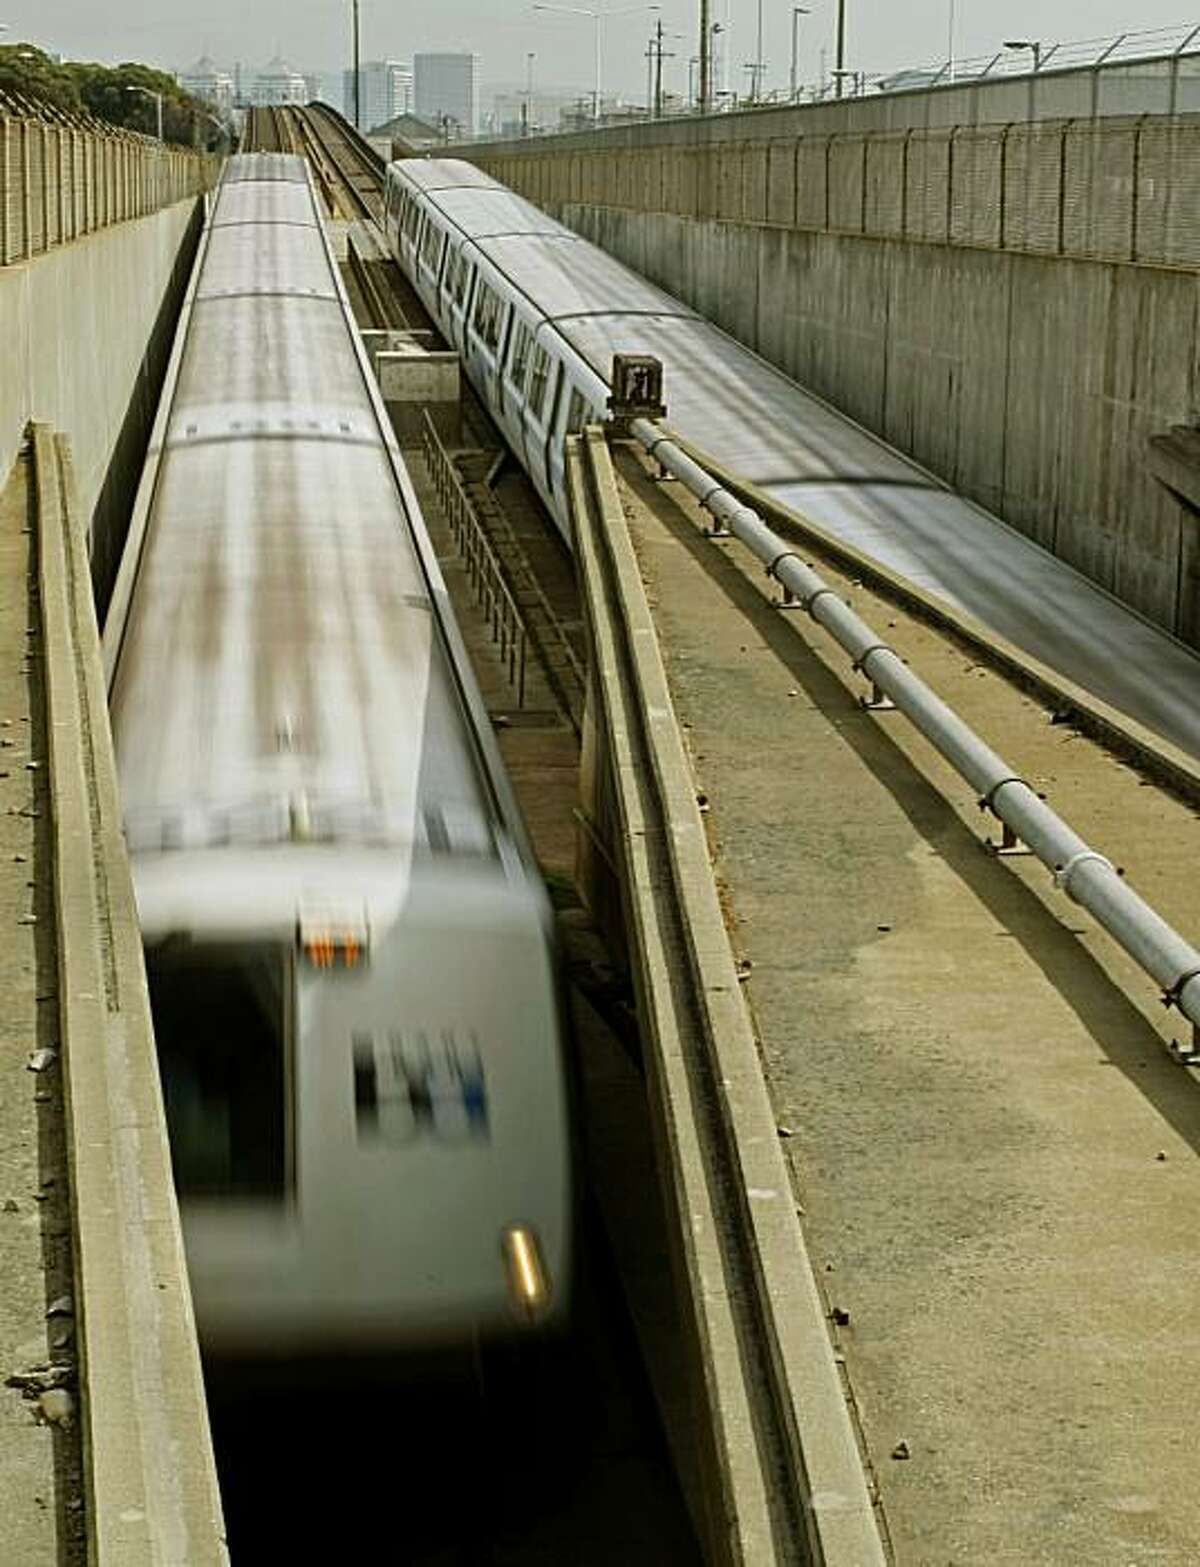 BART trains move into and out of the West Portal tunnel in West Oakland, Calif., on Mar. 7, 2008. State bond money will be used to earthquake retrofit the BART tube that carries thousands of passengers each day into and out of San Francisco, Calif., under San Francisco Bay. Photo by Michael Macor/ San Francisco Chronicle